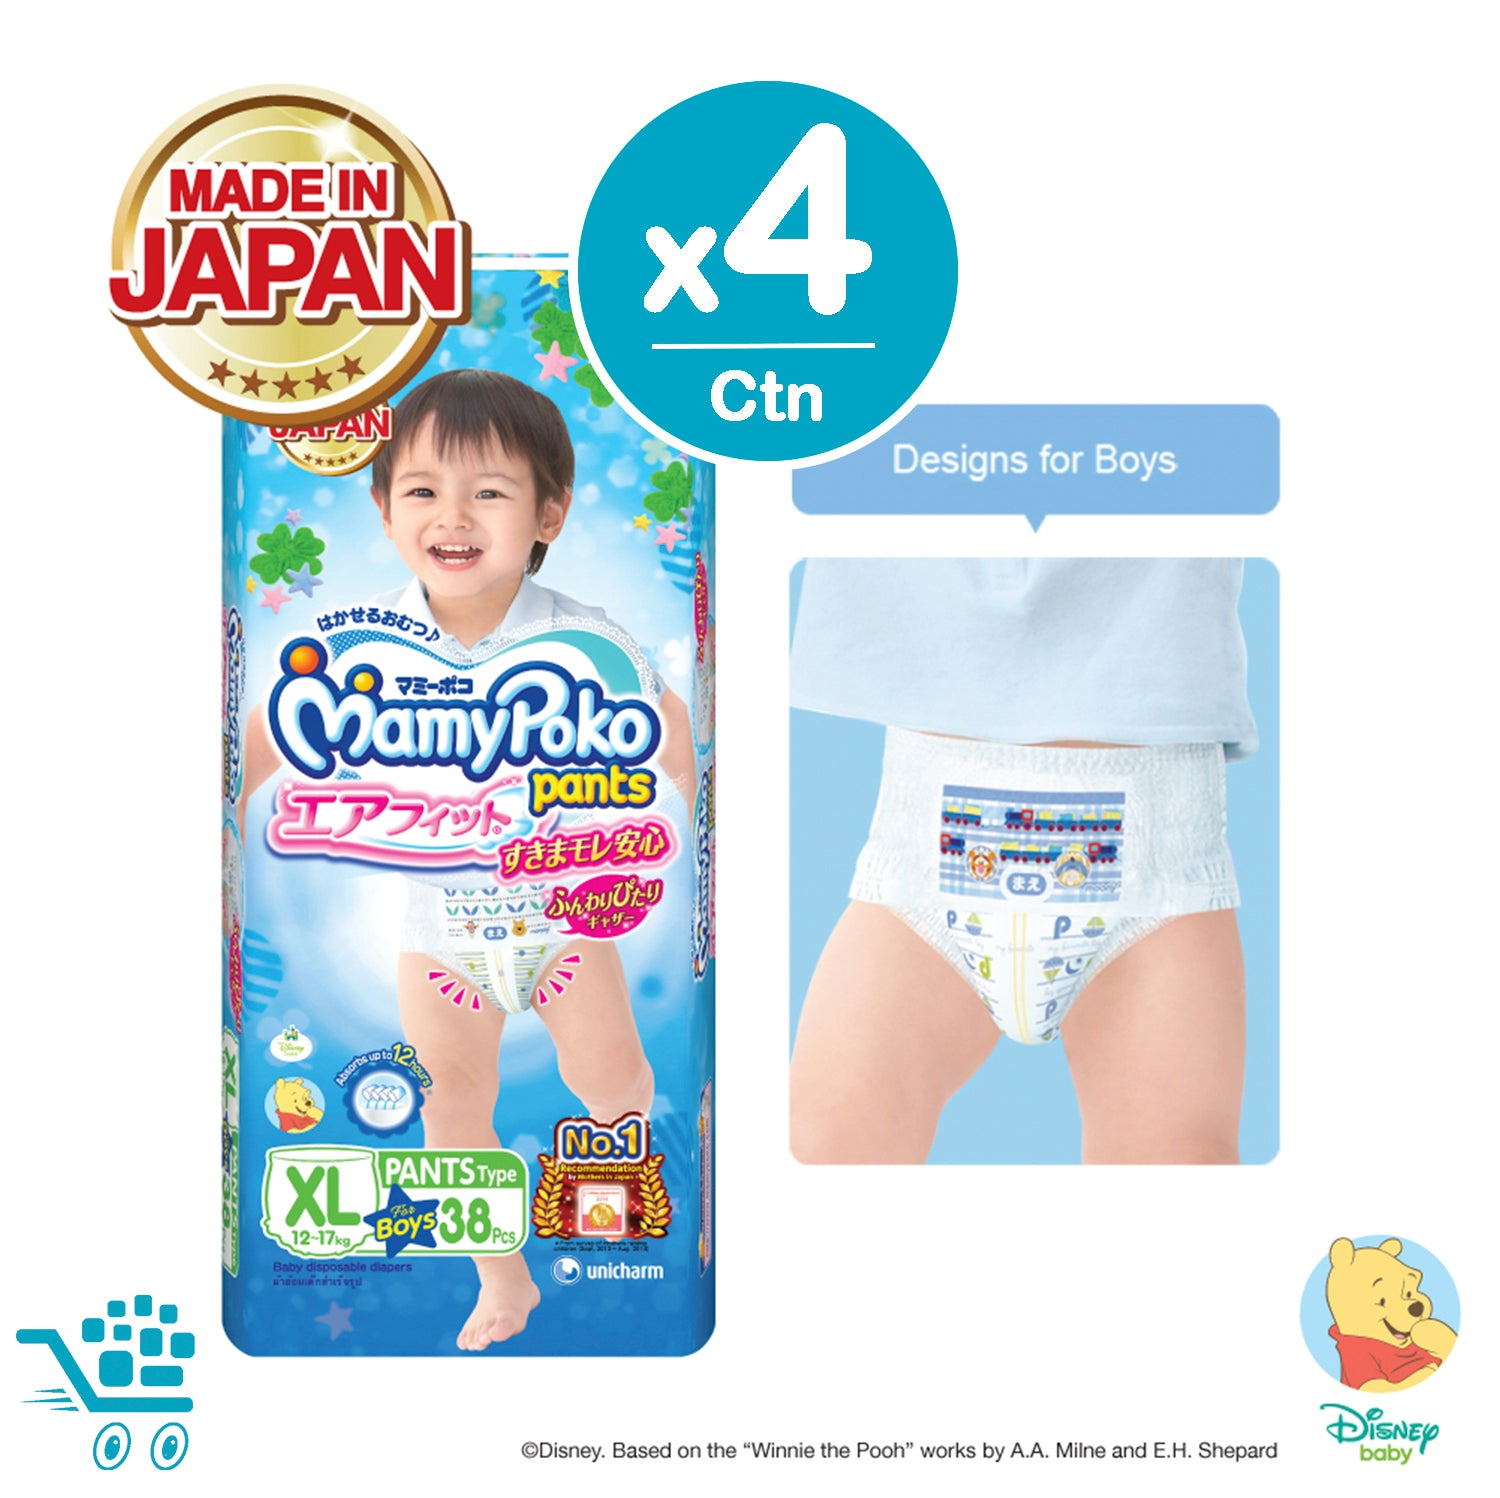 Mamypoko Air Fit Pants Type - Boy XL 38 pieces x 4 packs JPQ